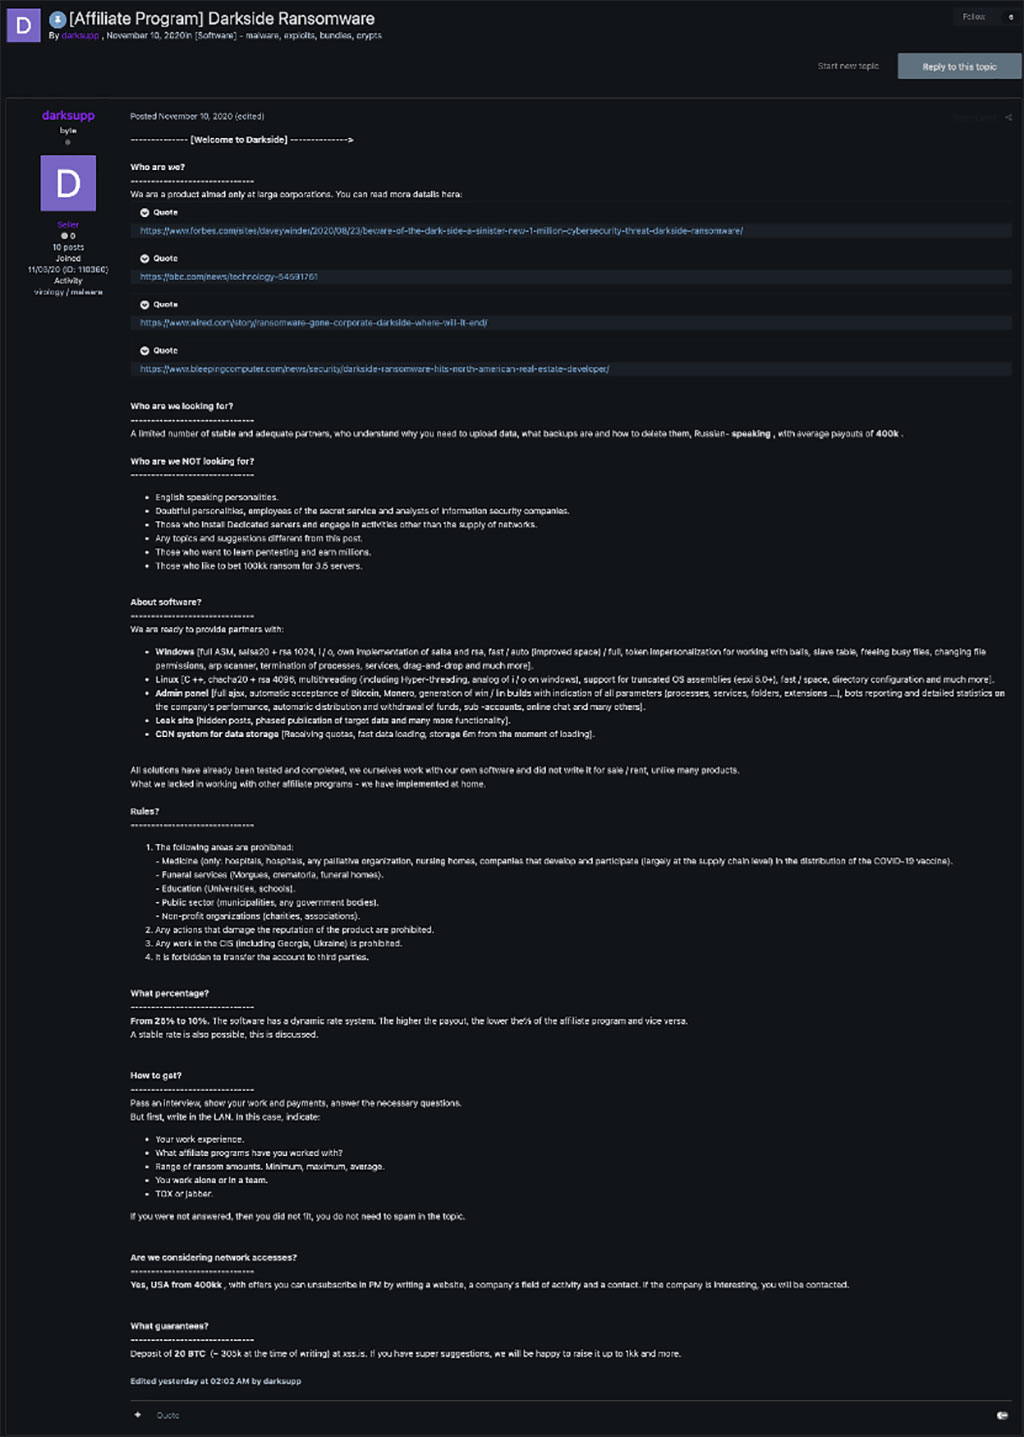 a recent example of a recent post by the ransomware group, Darkside